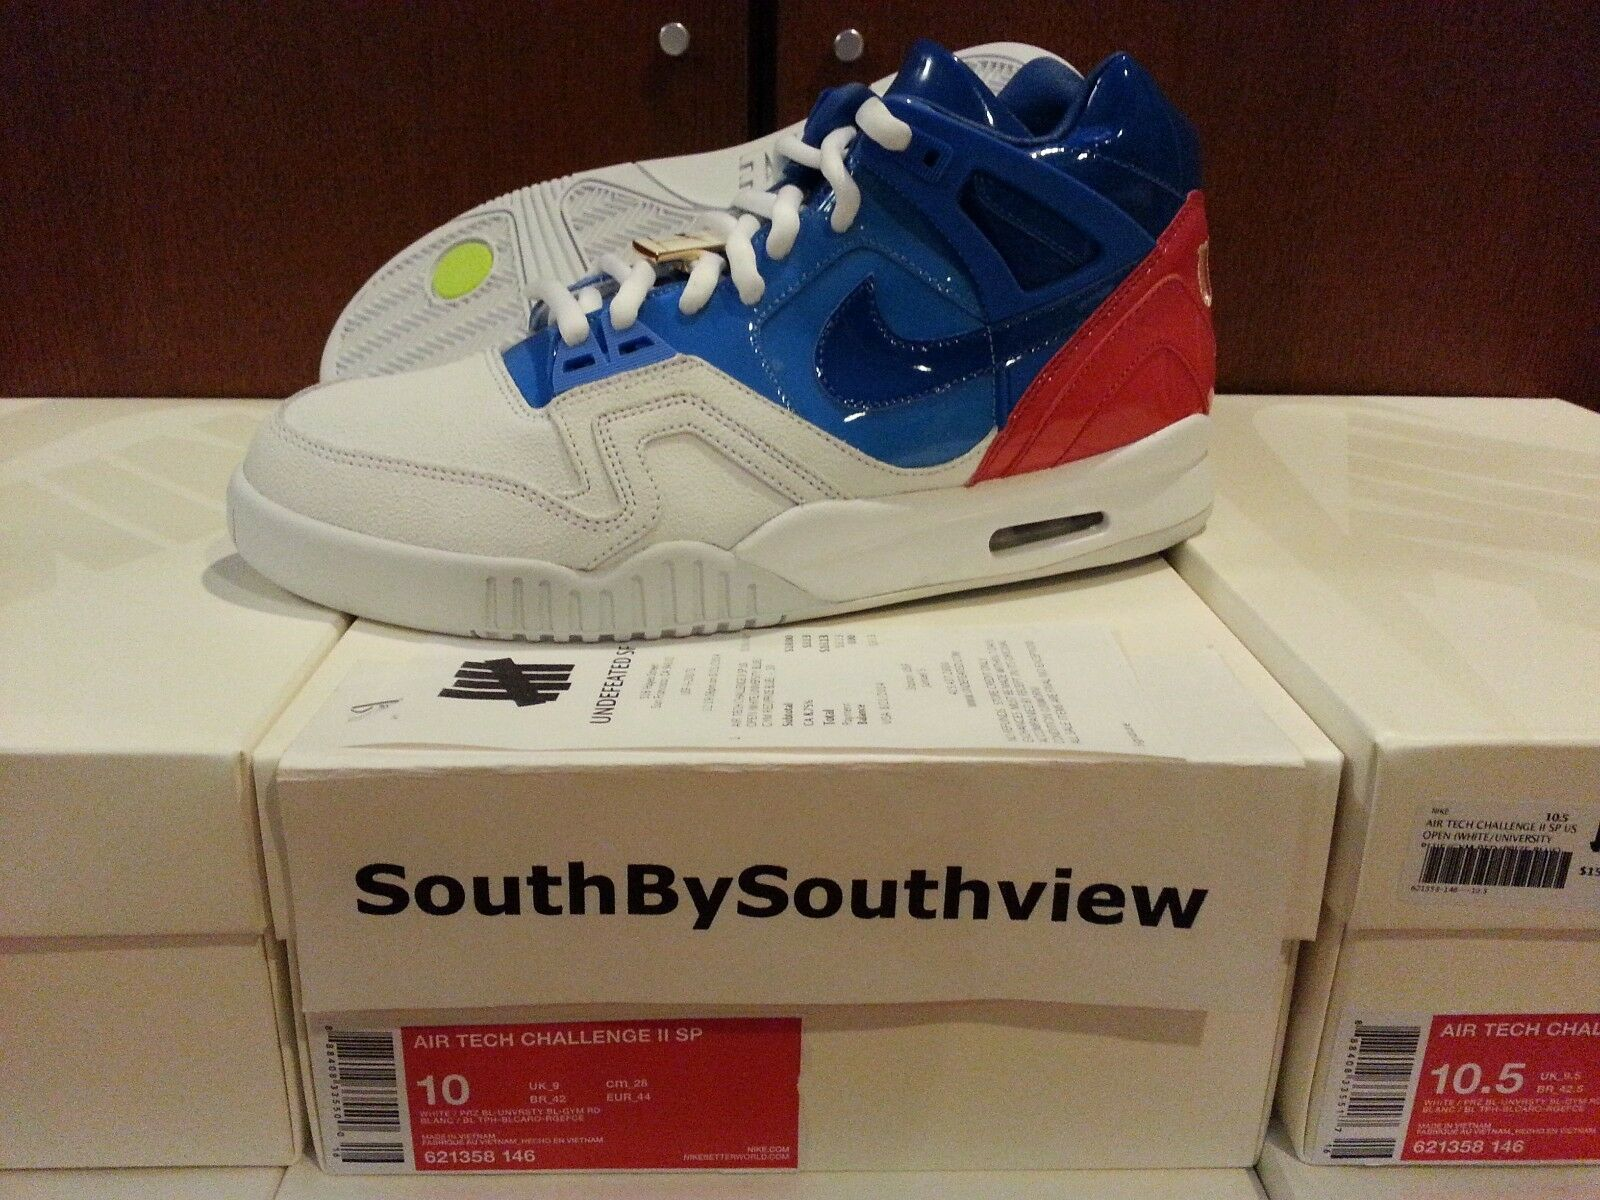 factory authentic f1e4d eaba4 Nike Nike Nike Air Tech Challenge 2 US Open Size 8 11 12 ii u.s. usa